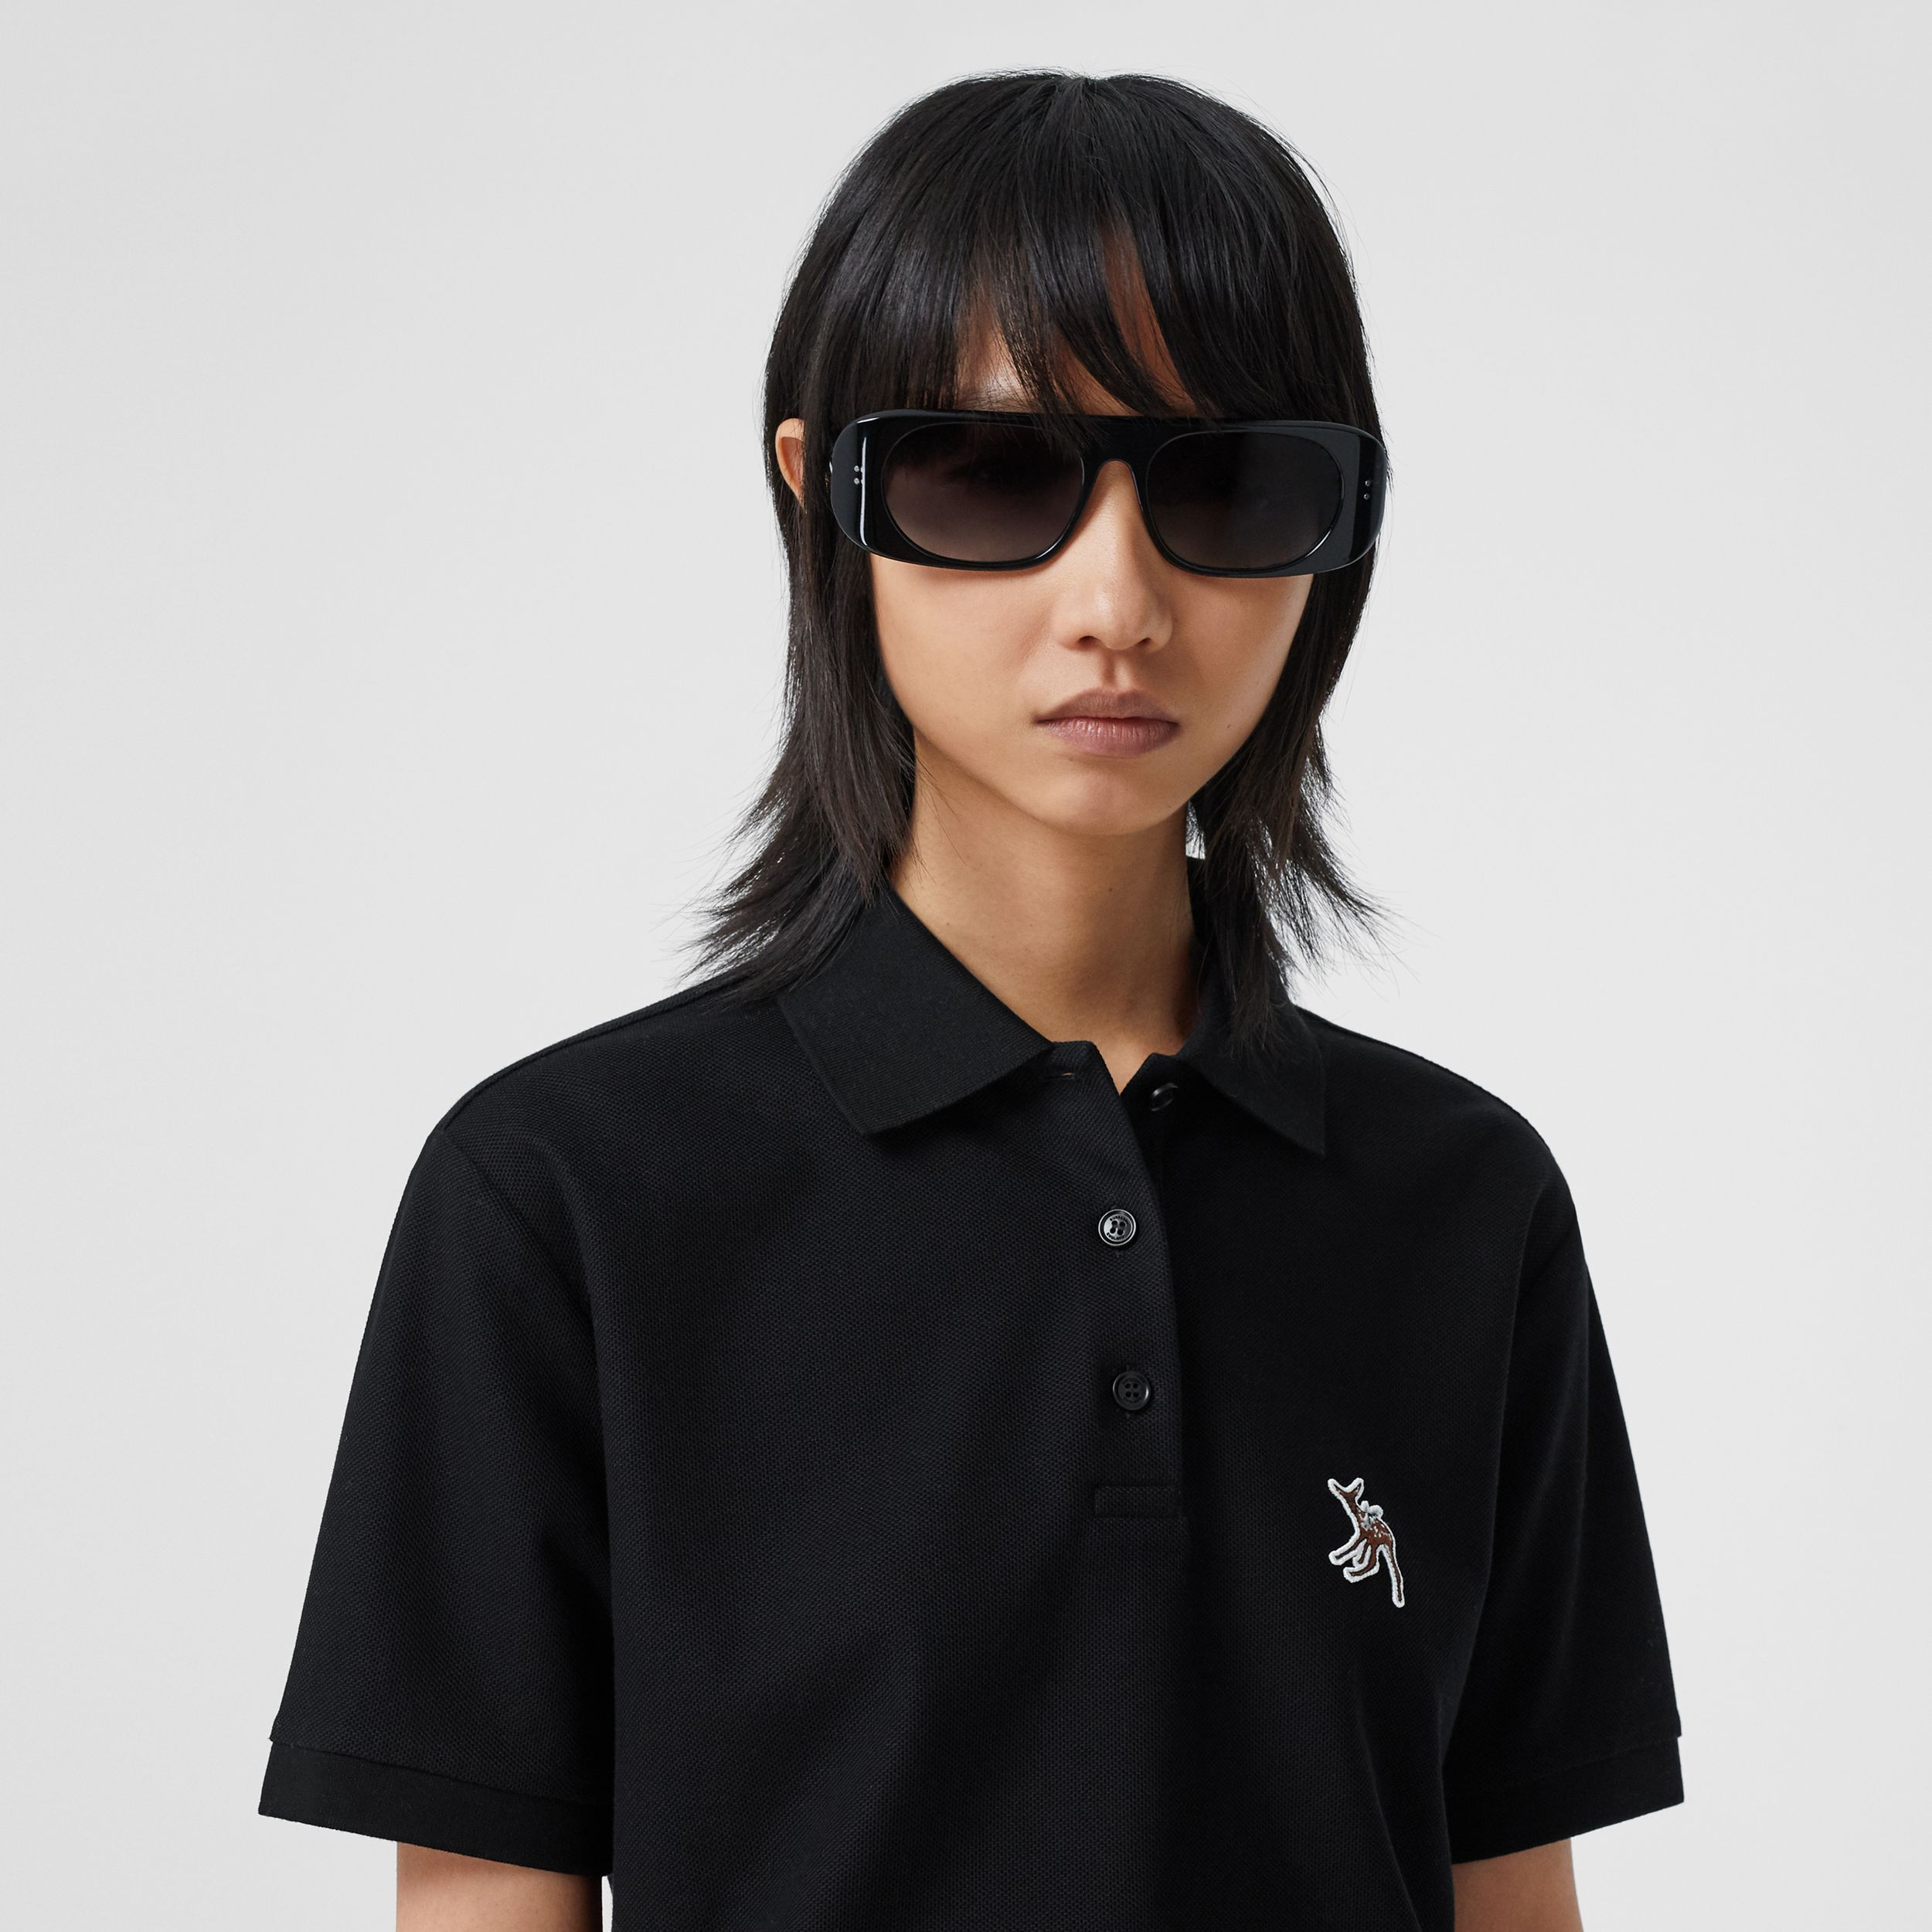 Deer Motif Cotton Piqué Oversized Polo Shirt in Black - Women | Burberry Hong Kong S.A.R. - 2